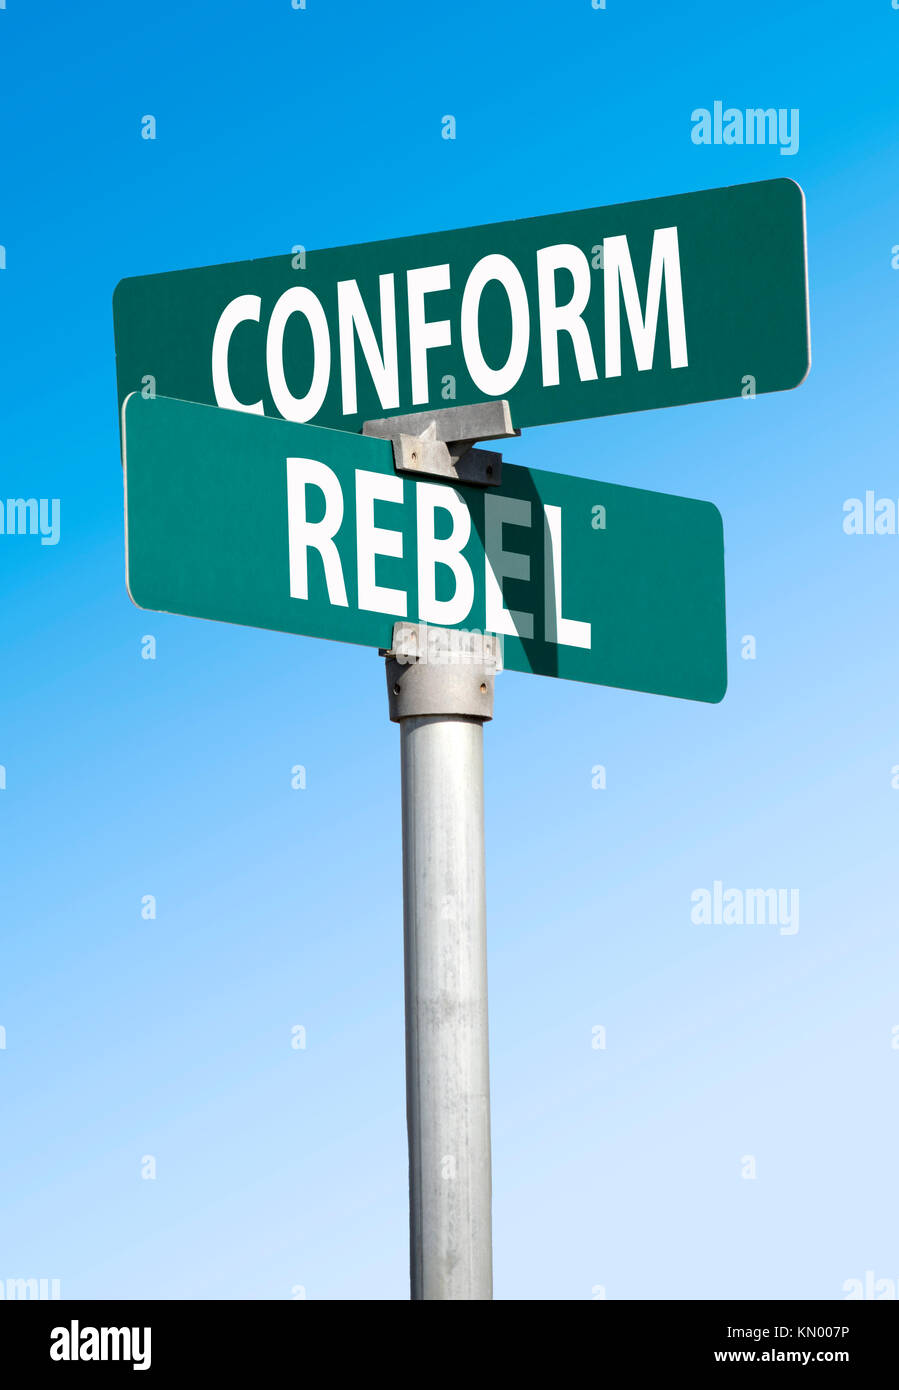 conform and rebel sign - Stock Image